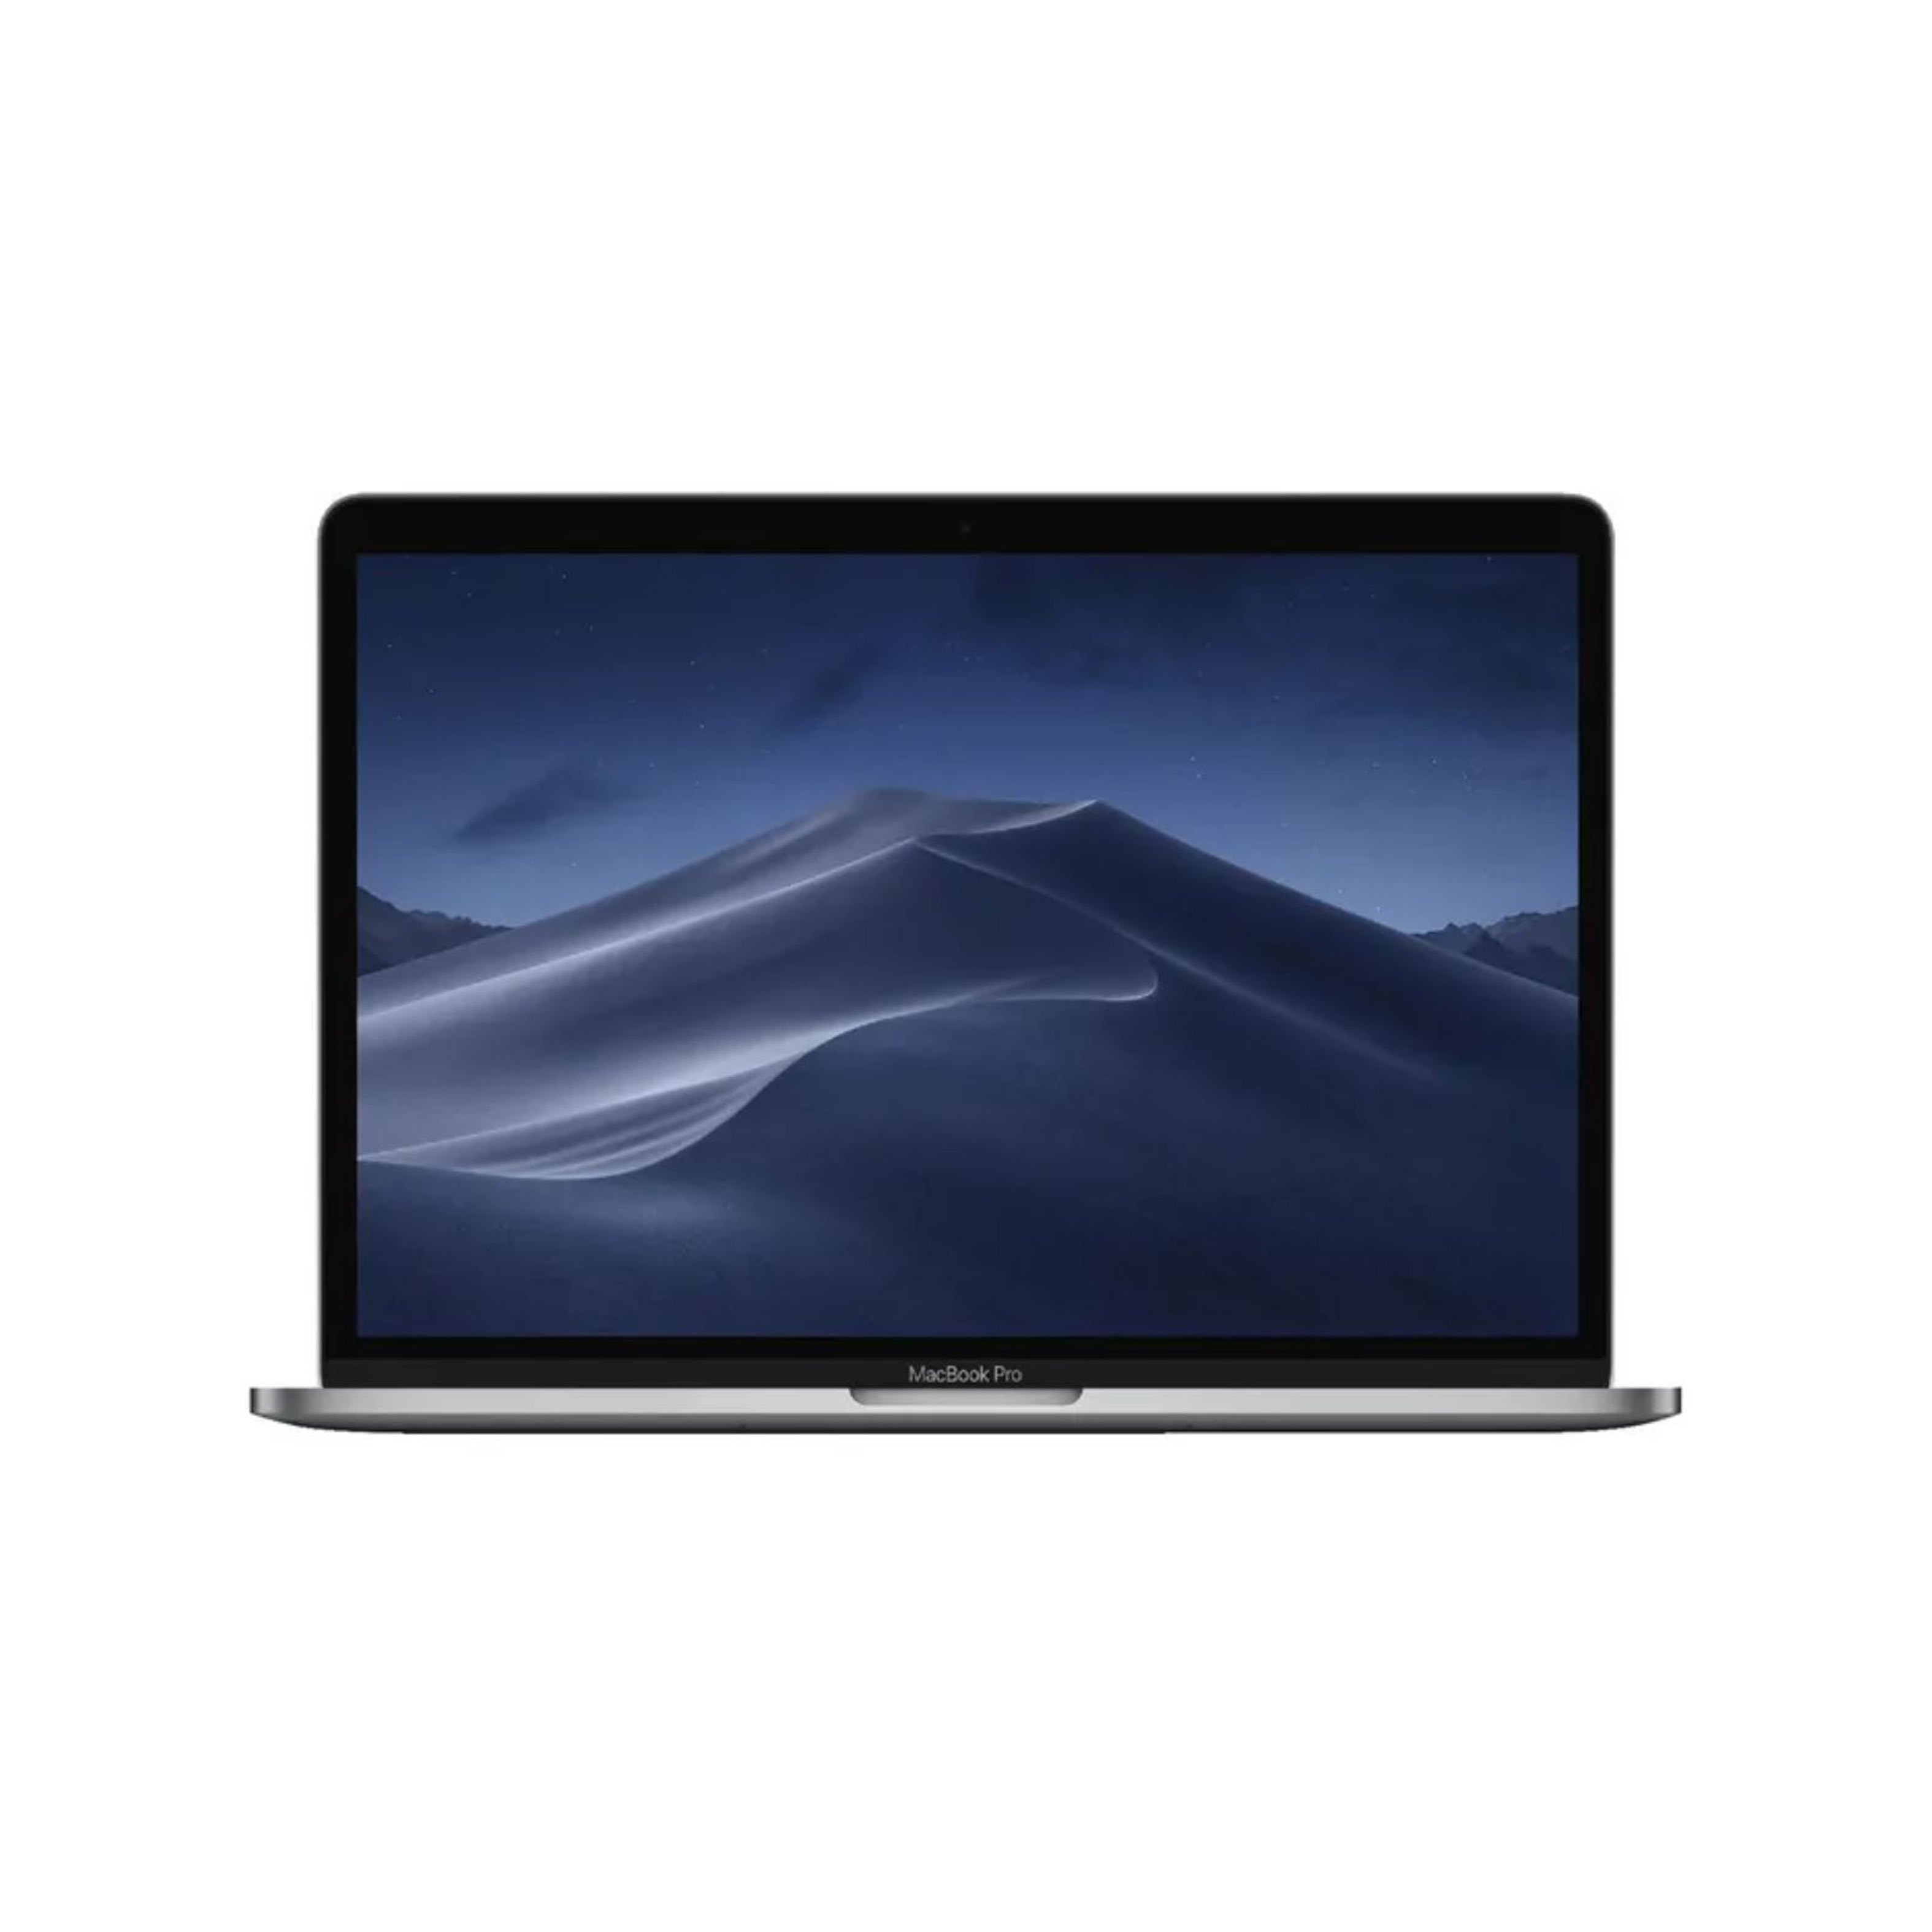 Apple 13in MacBook Pro 2020 - 1.4GHz 8th Gen Intel i5 256GB - Space Grey (MXK32X/A)